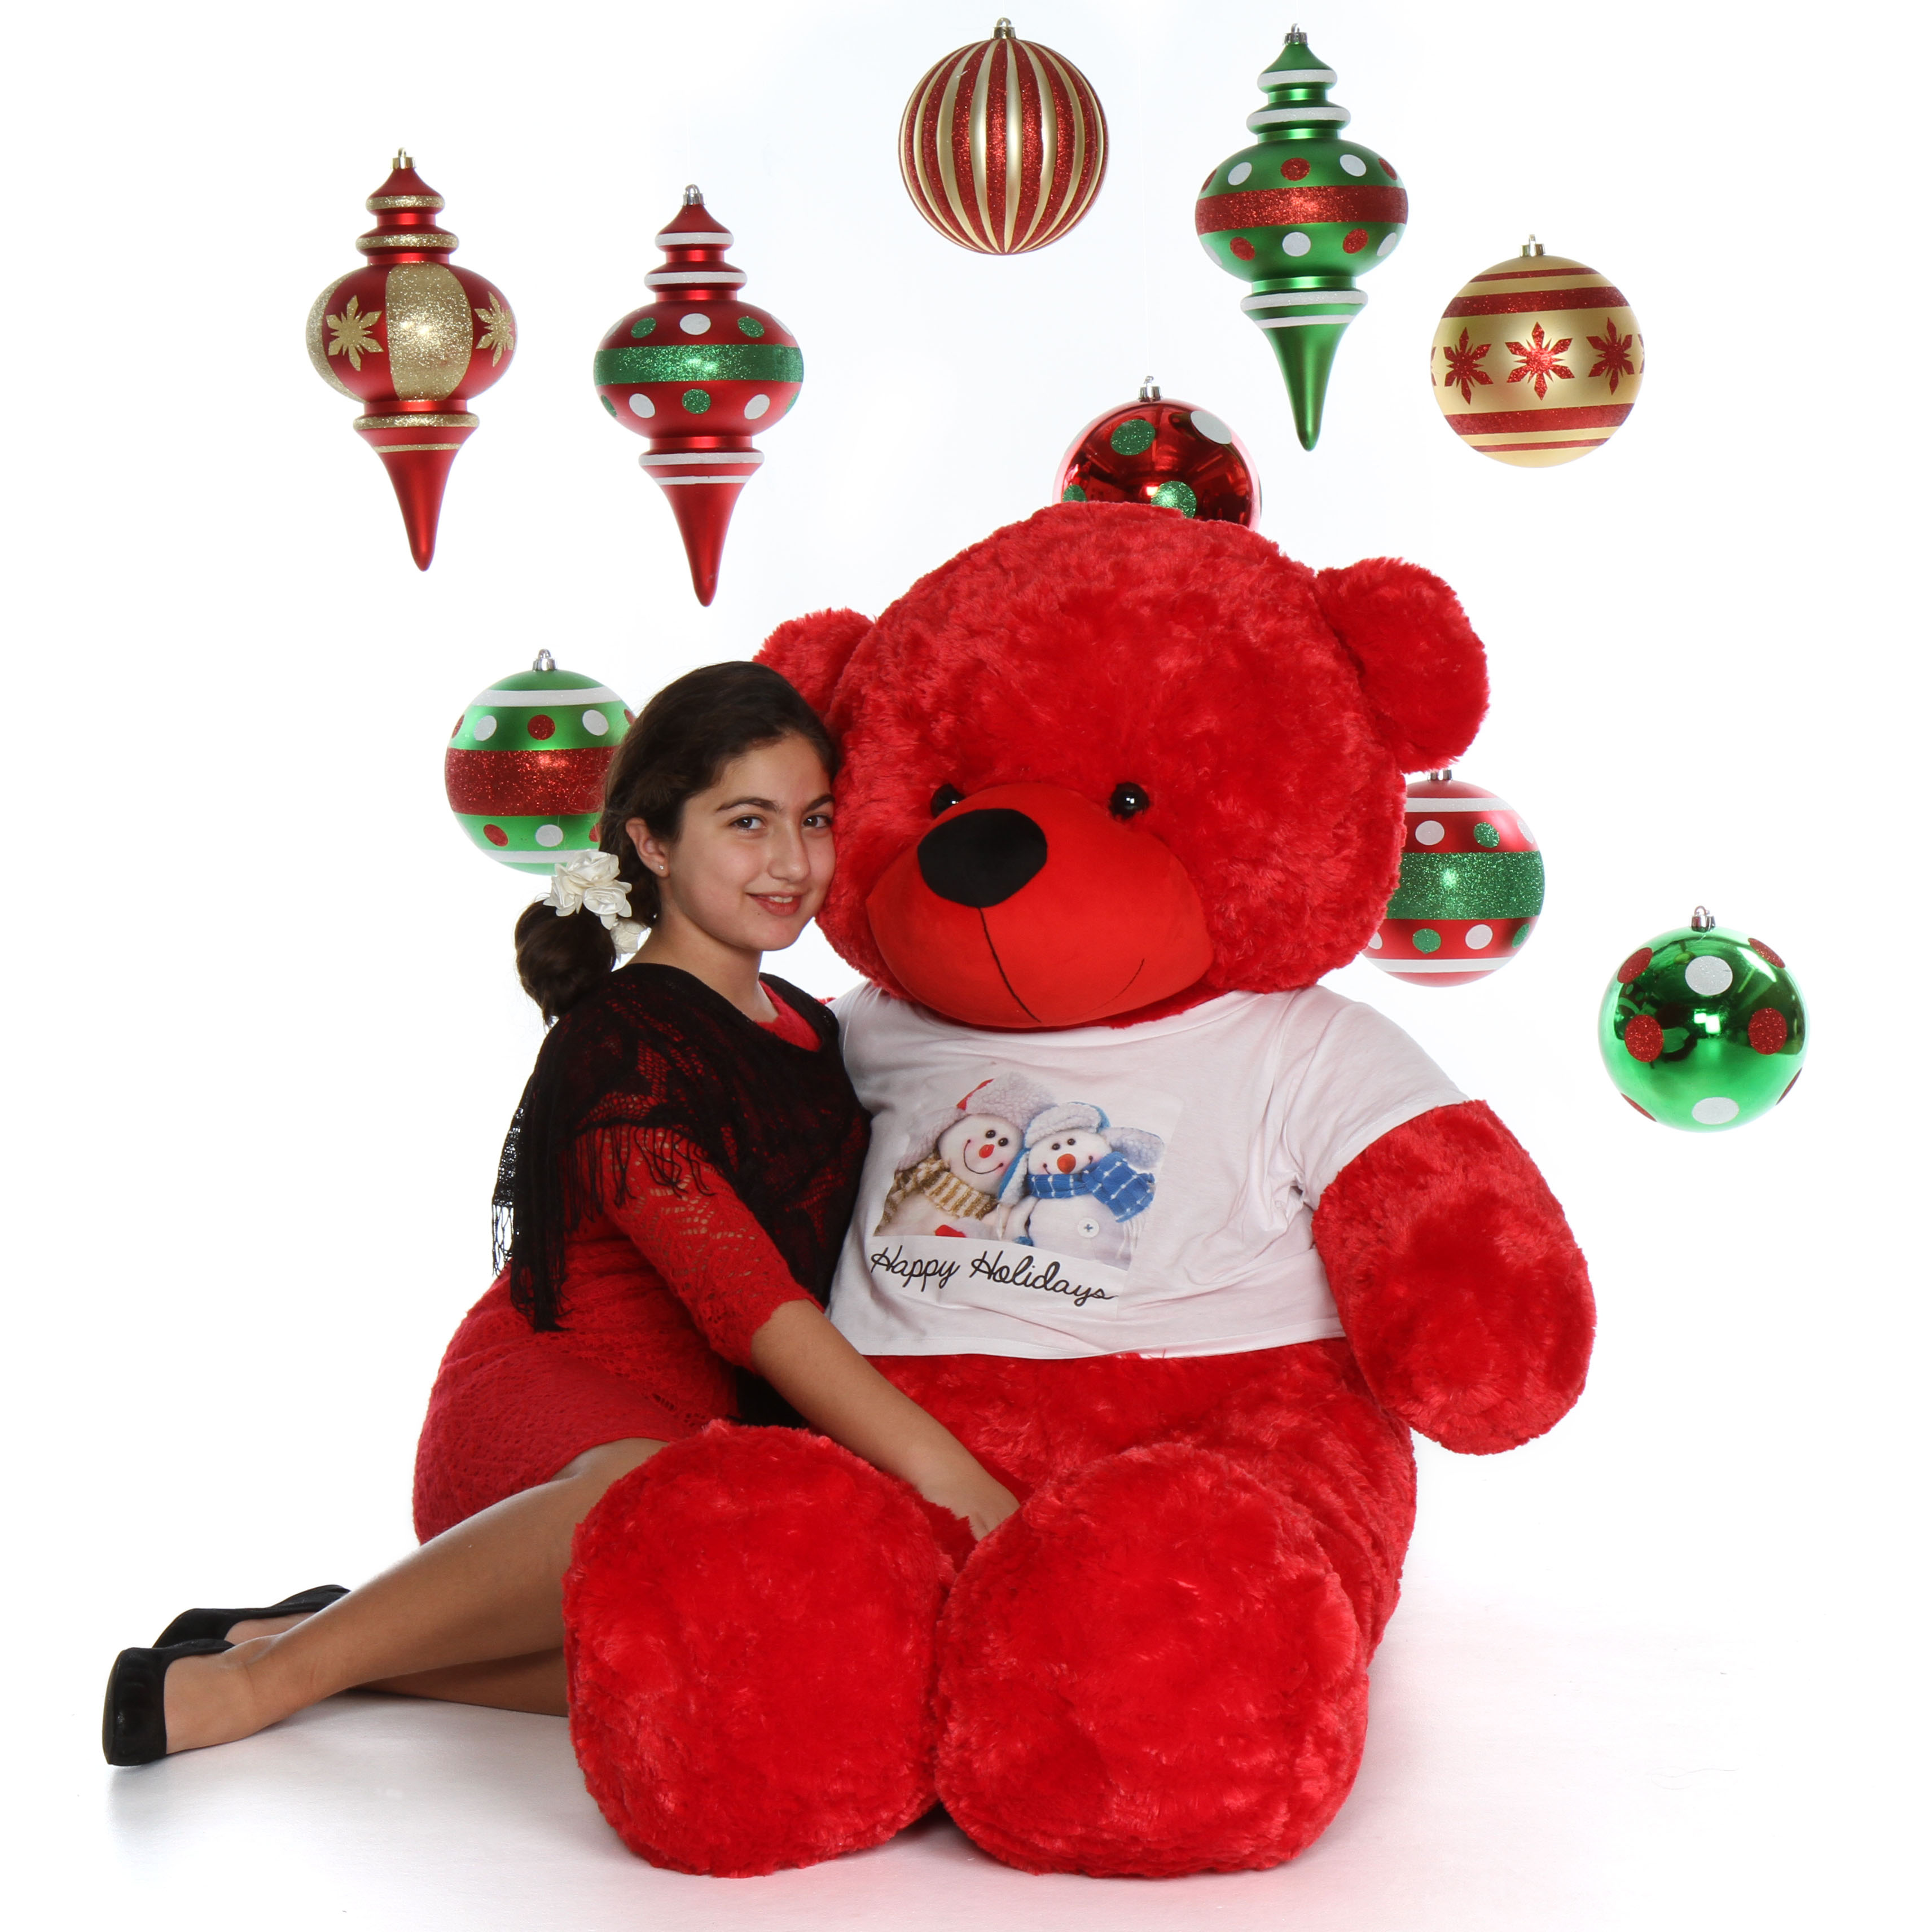 5ft-red-bitsy-cuddles-giant-teddy-in-happy-holidays-snowman-shirt.jpg